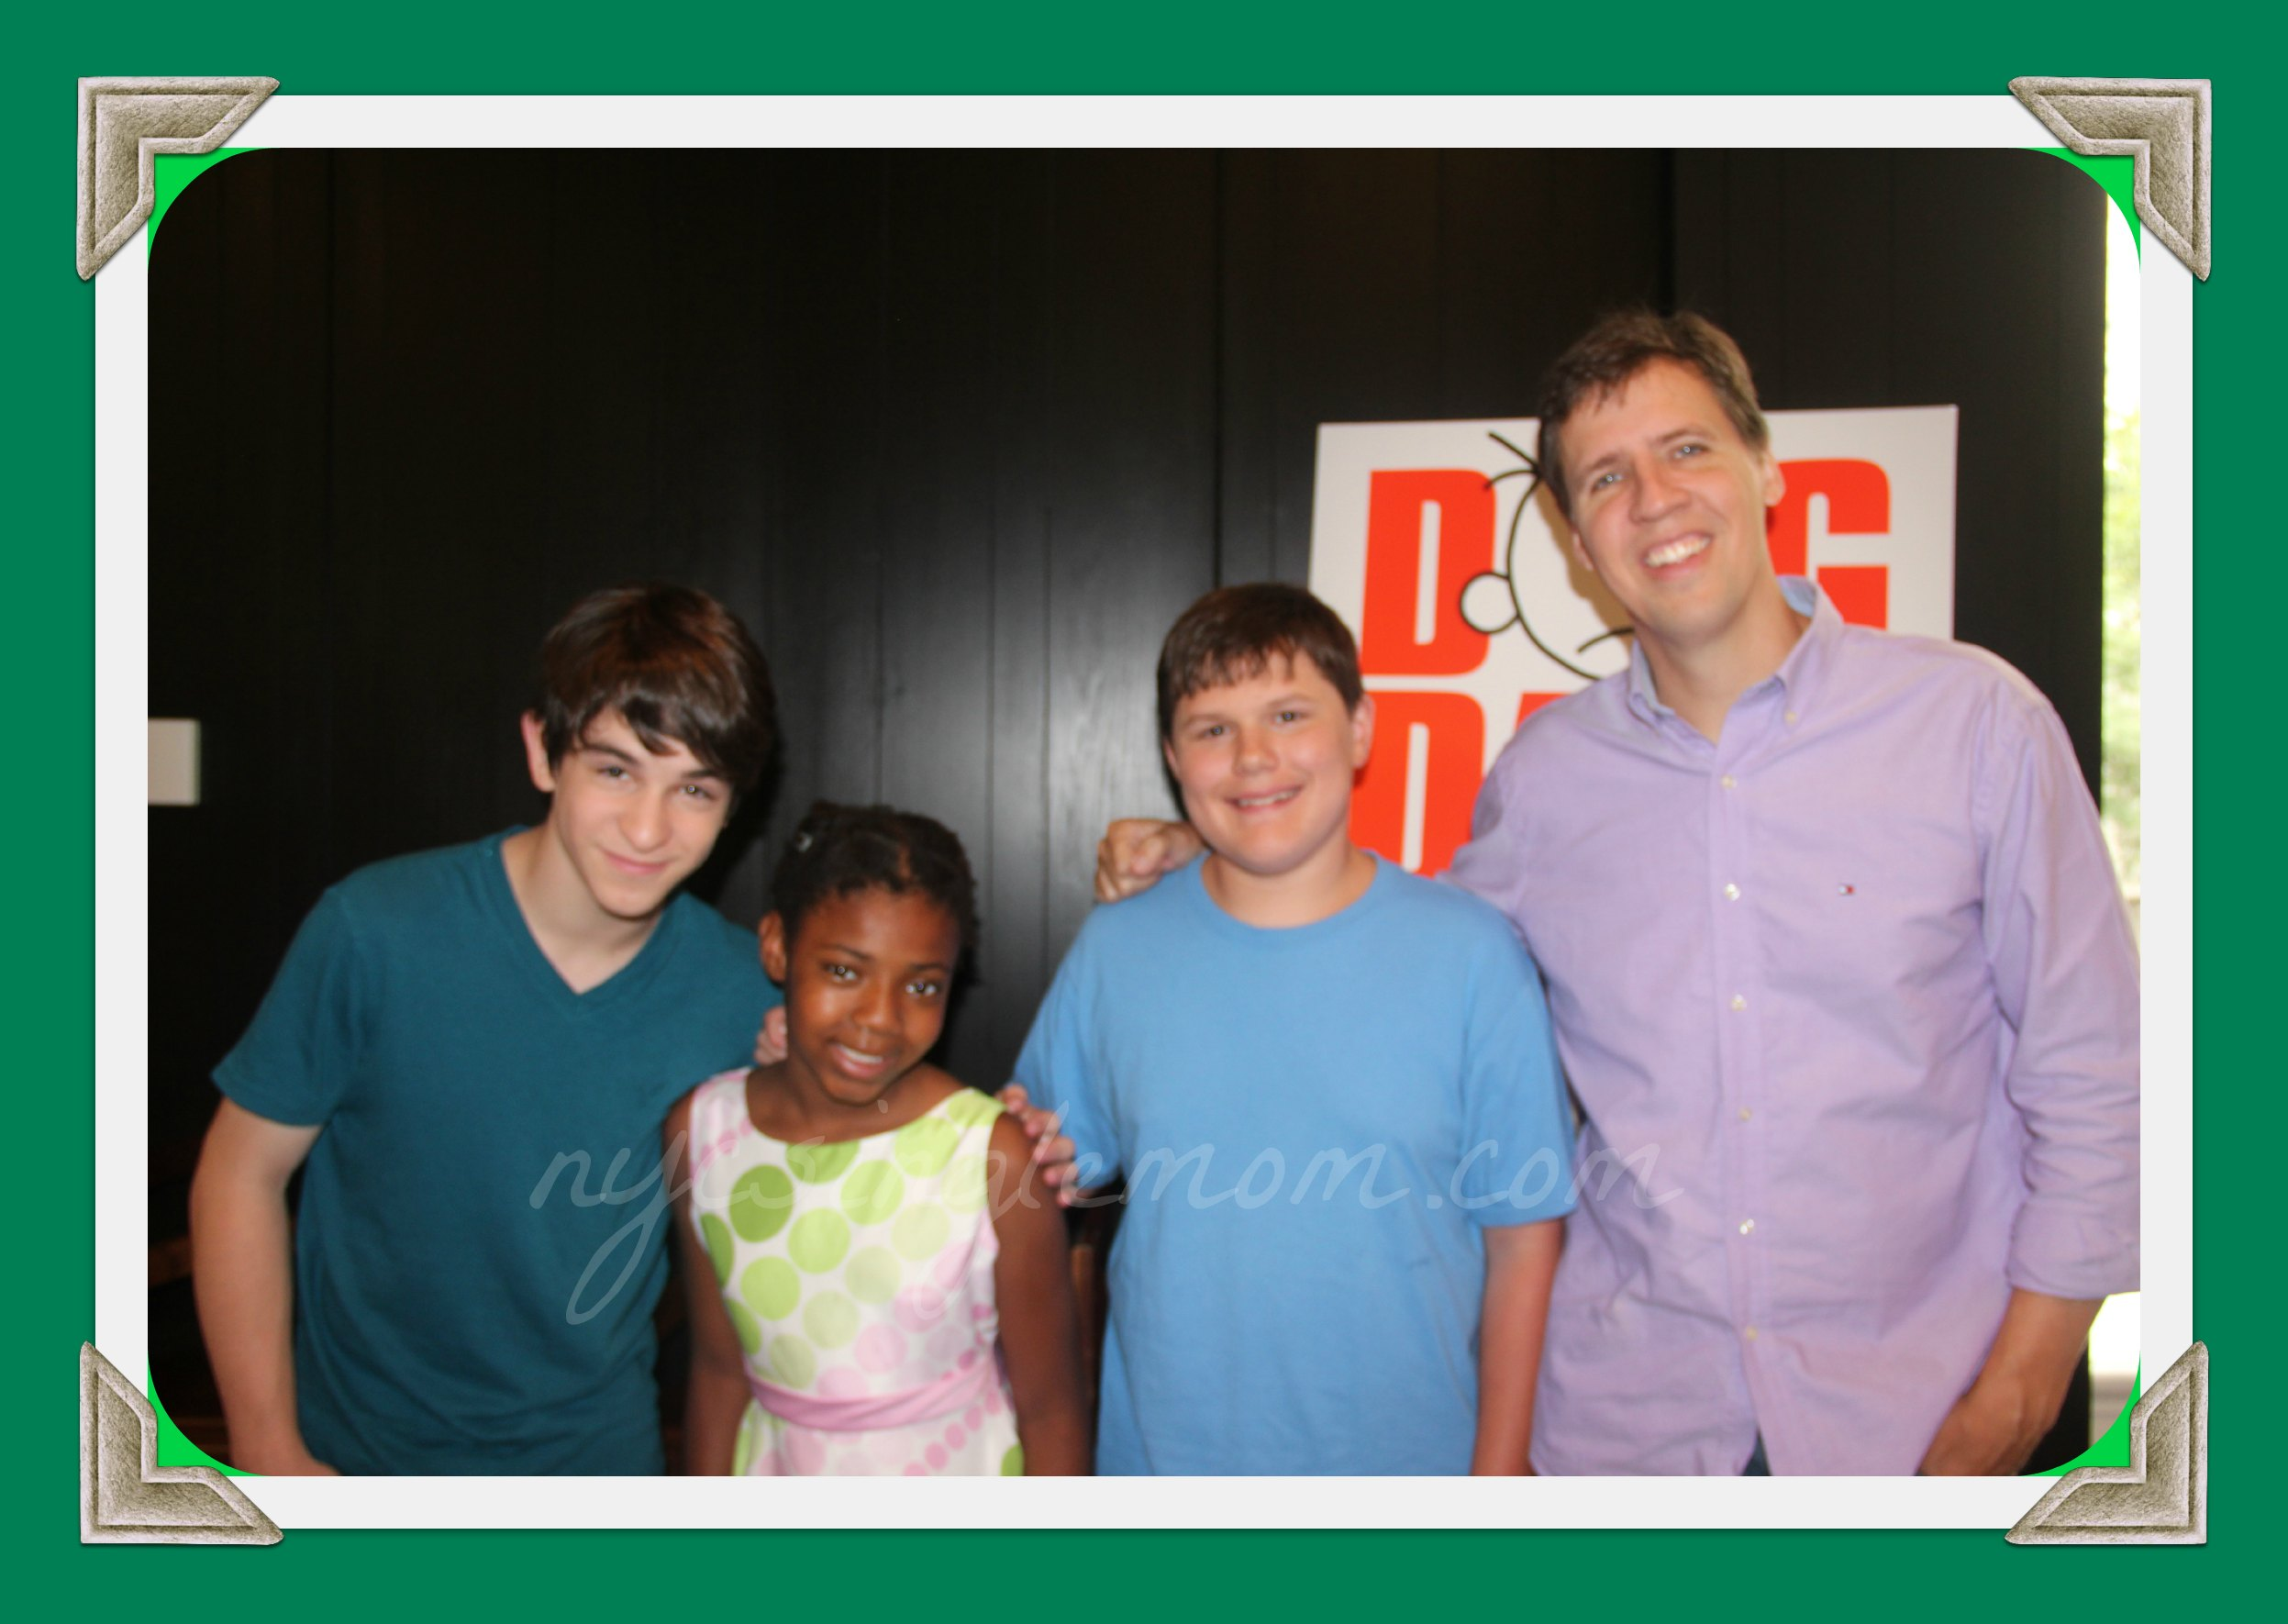 Interview with the diary of a wimpy kid dog day stars zachary interview with the diary of a wimpy kid dog day stars zachary gordon robert capron jeff kinney solutioingenieria Images